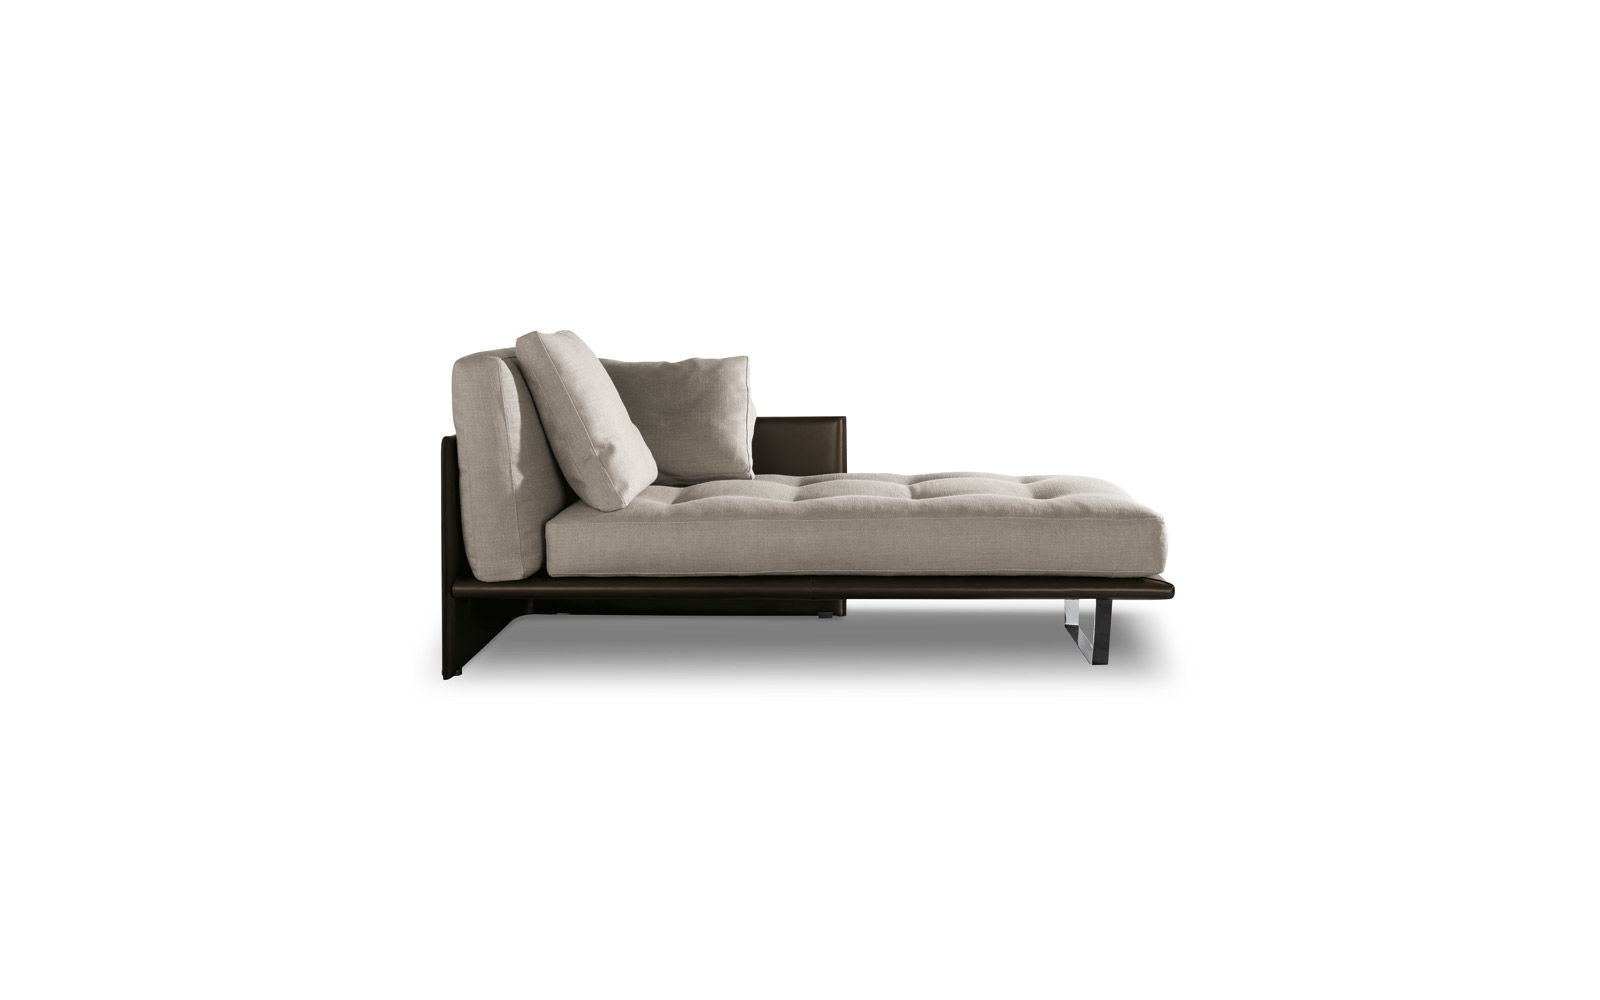 Luggage chaise longue for Chaise longue chilienne